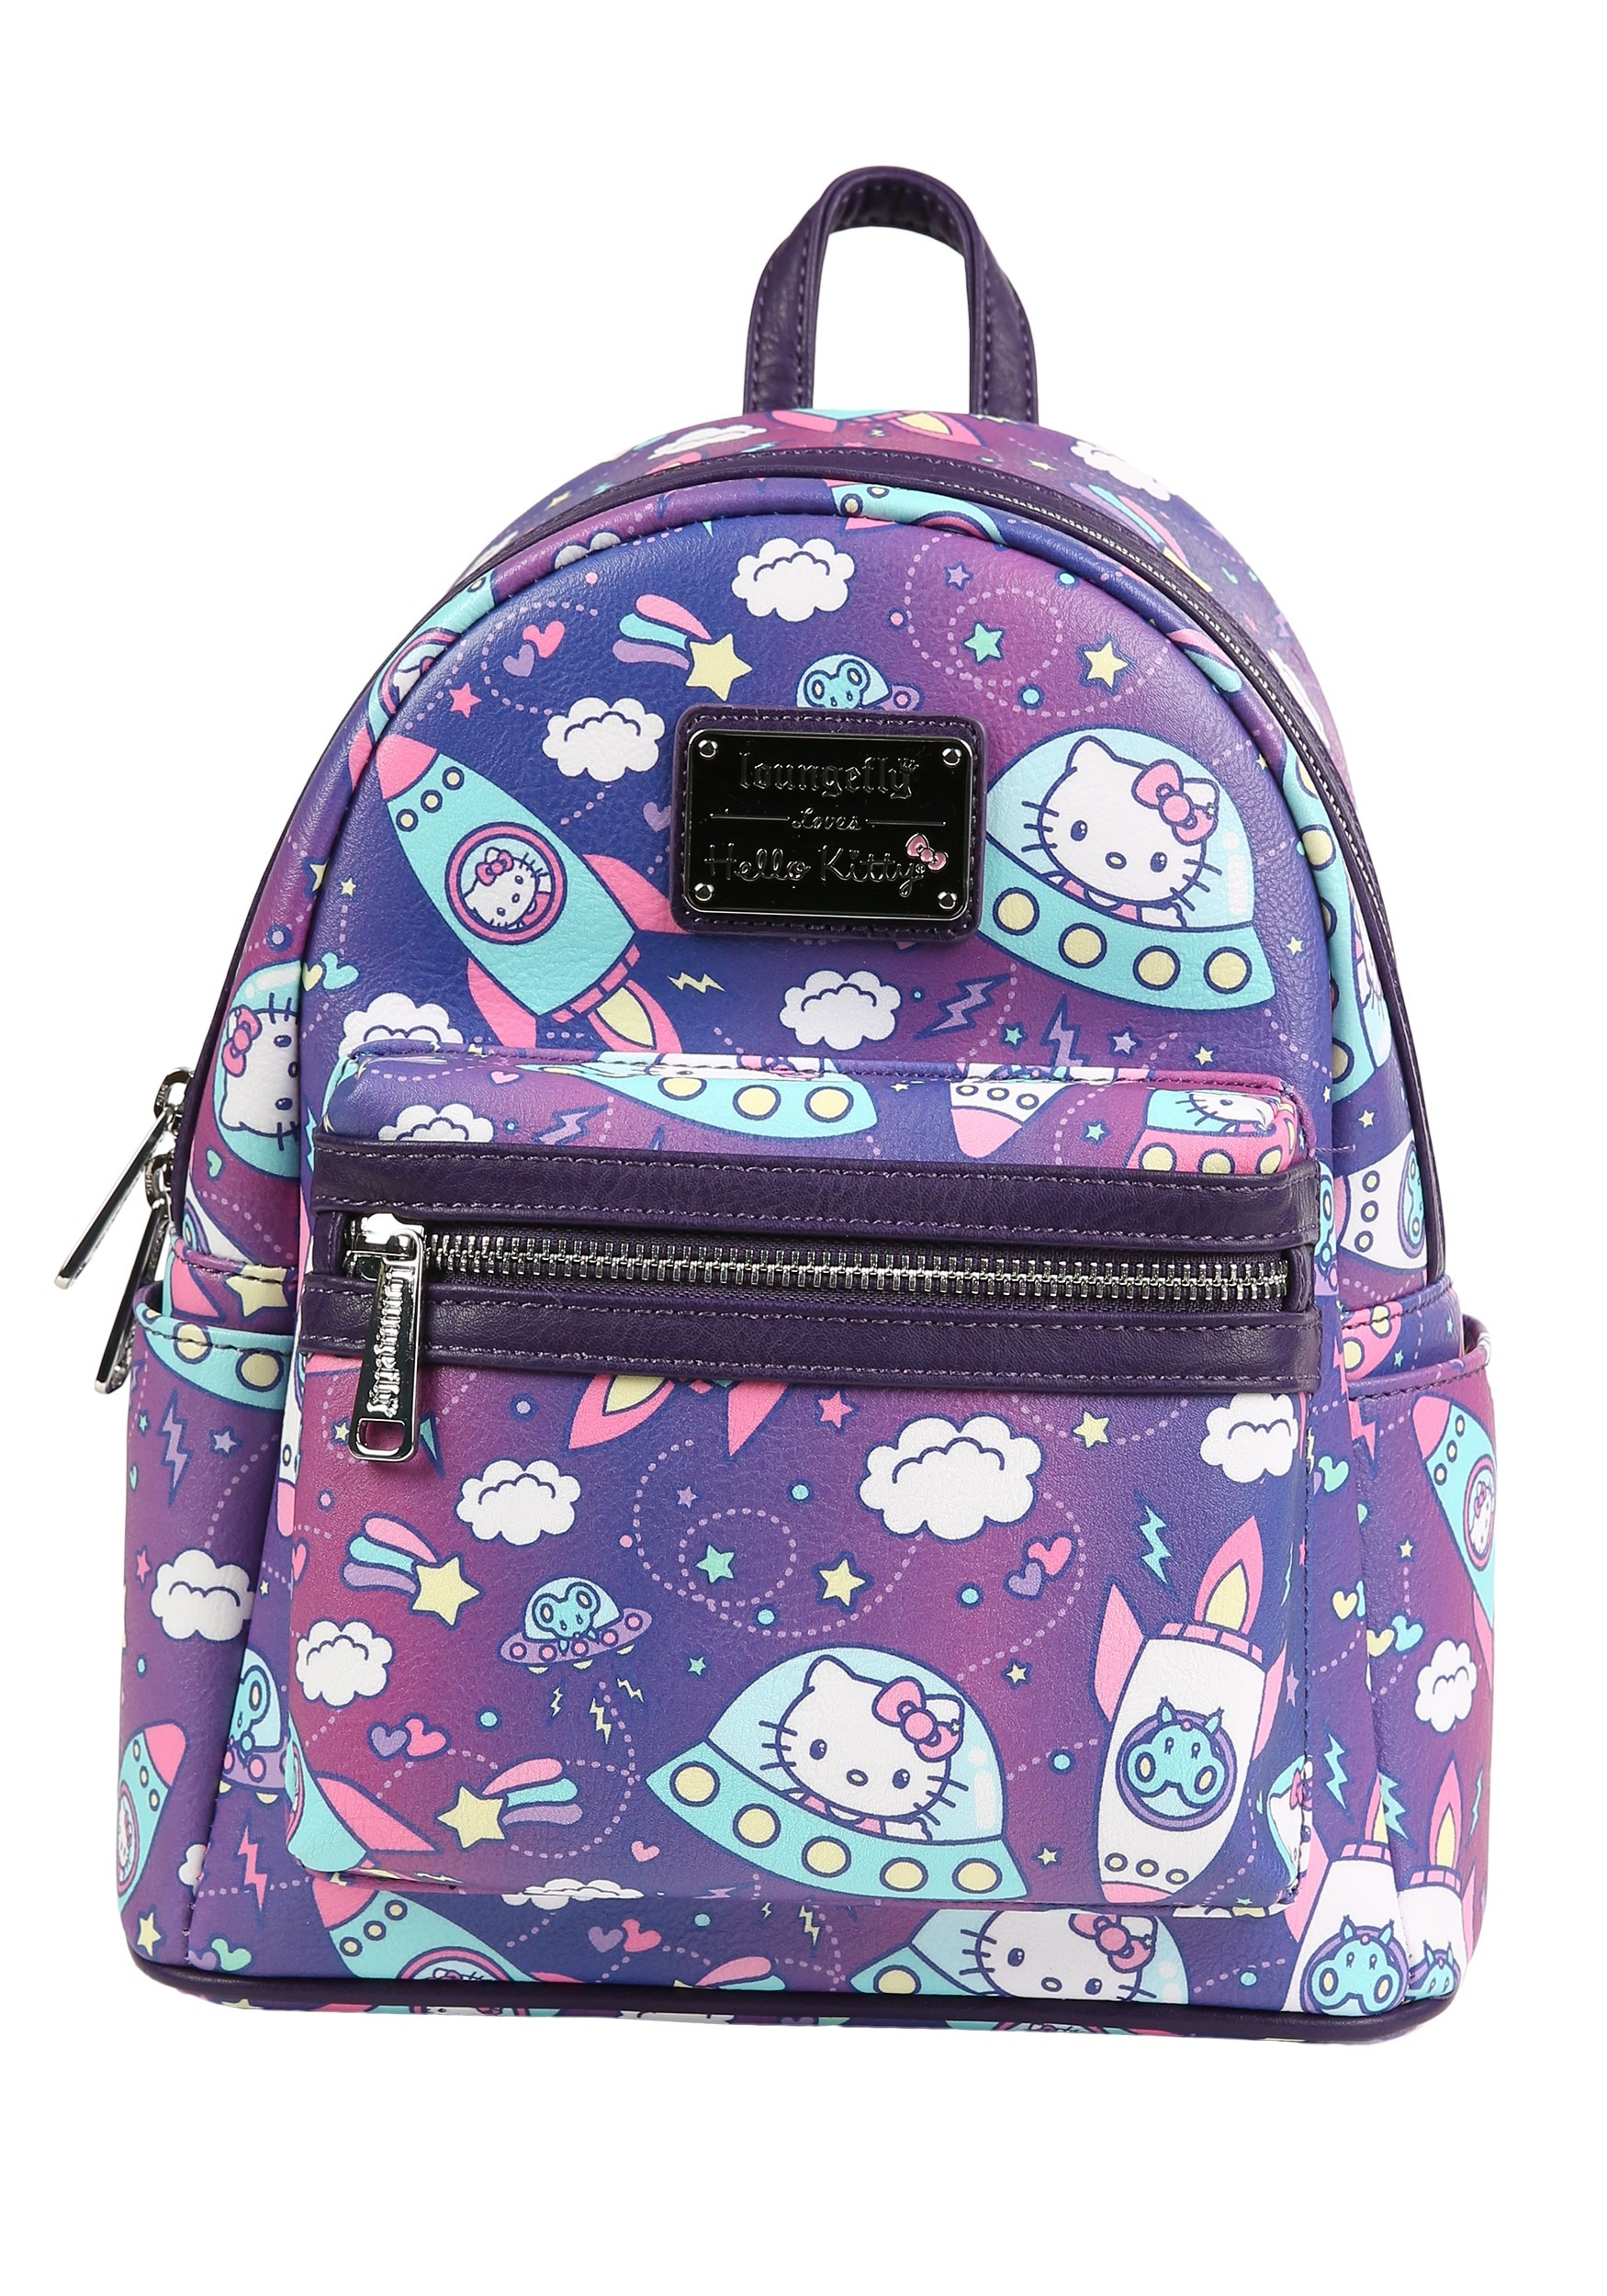 40b42a692 Loungefly Faux Leather Hello Kitty Spaceships Print Mini Backpack